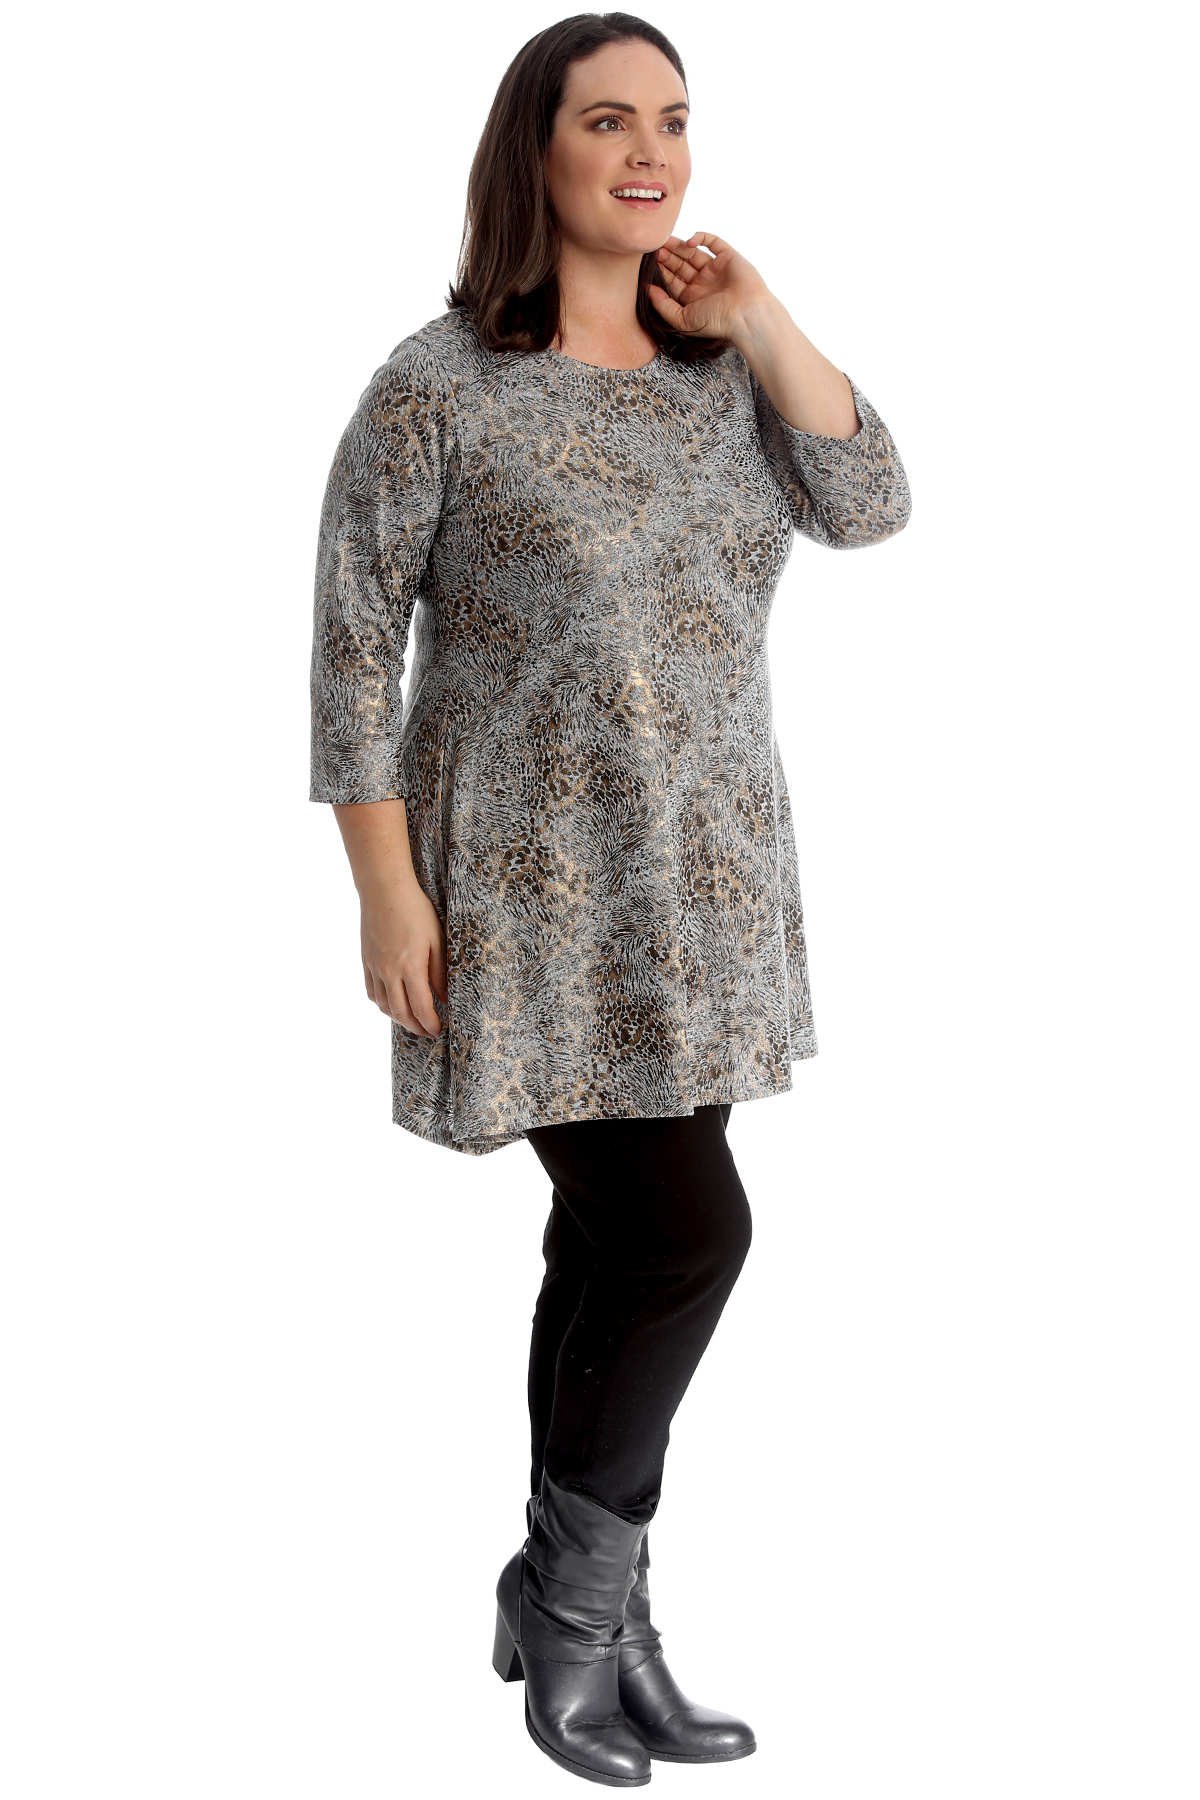 New Women Plus Size Swing Top Ladies Tunic Leopard Print Shine Gold A-Line Style